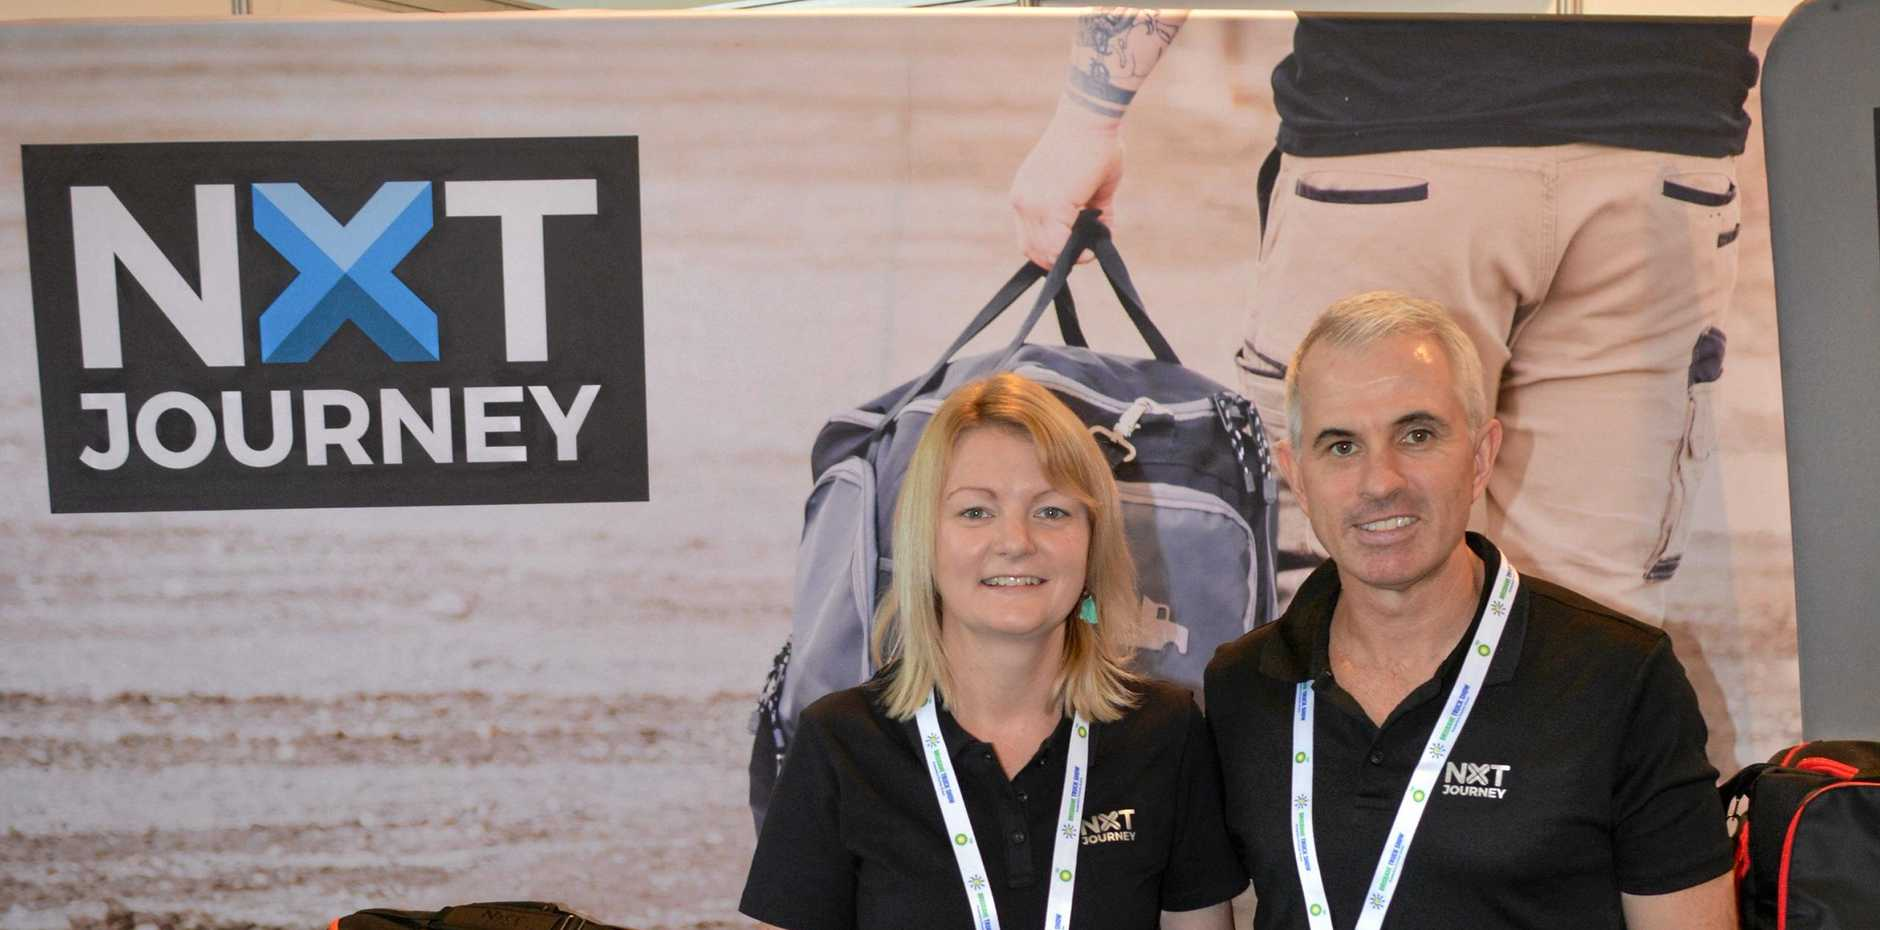 IN THE BAG: Gemma and Simon Sutherland on the NXT Journey stand at the truck show.